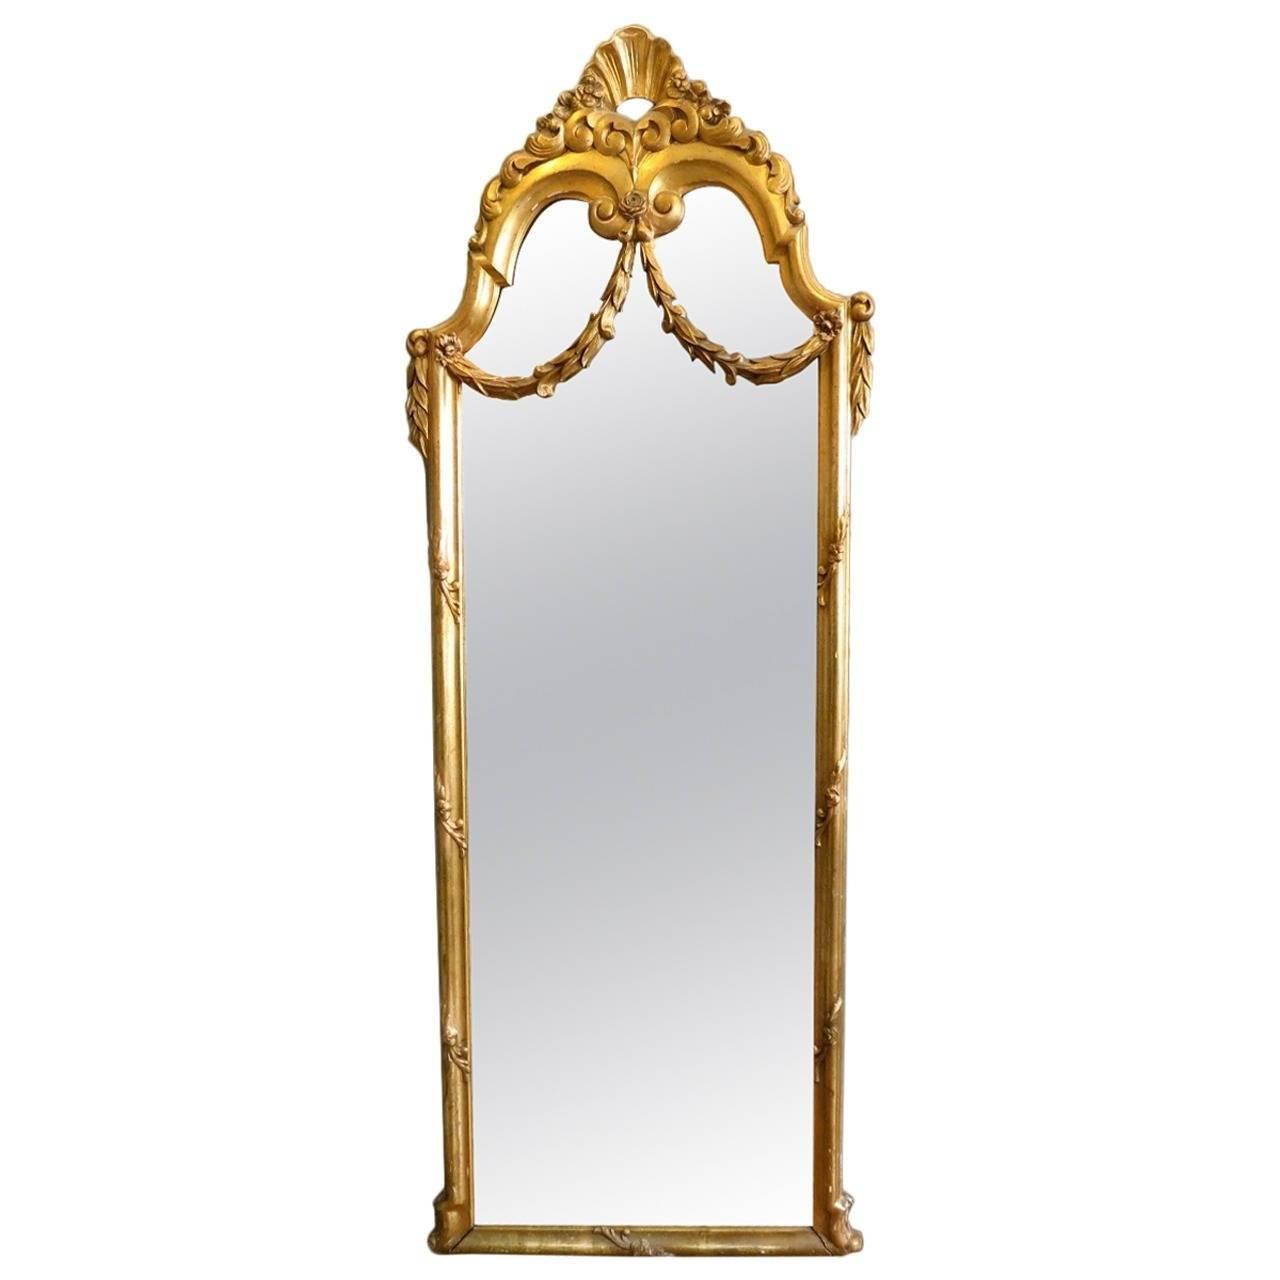 Antique French Gold Gilt Floor Standing Mirror At 1Stdibs pertaining to French Gold Mirrors (Image 13 of 25)